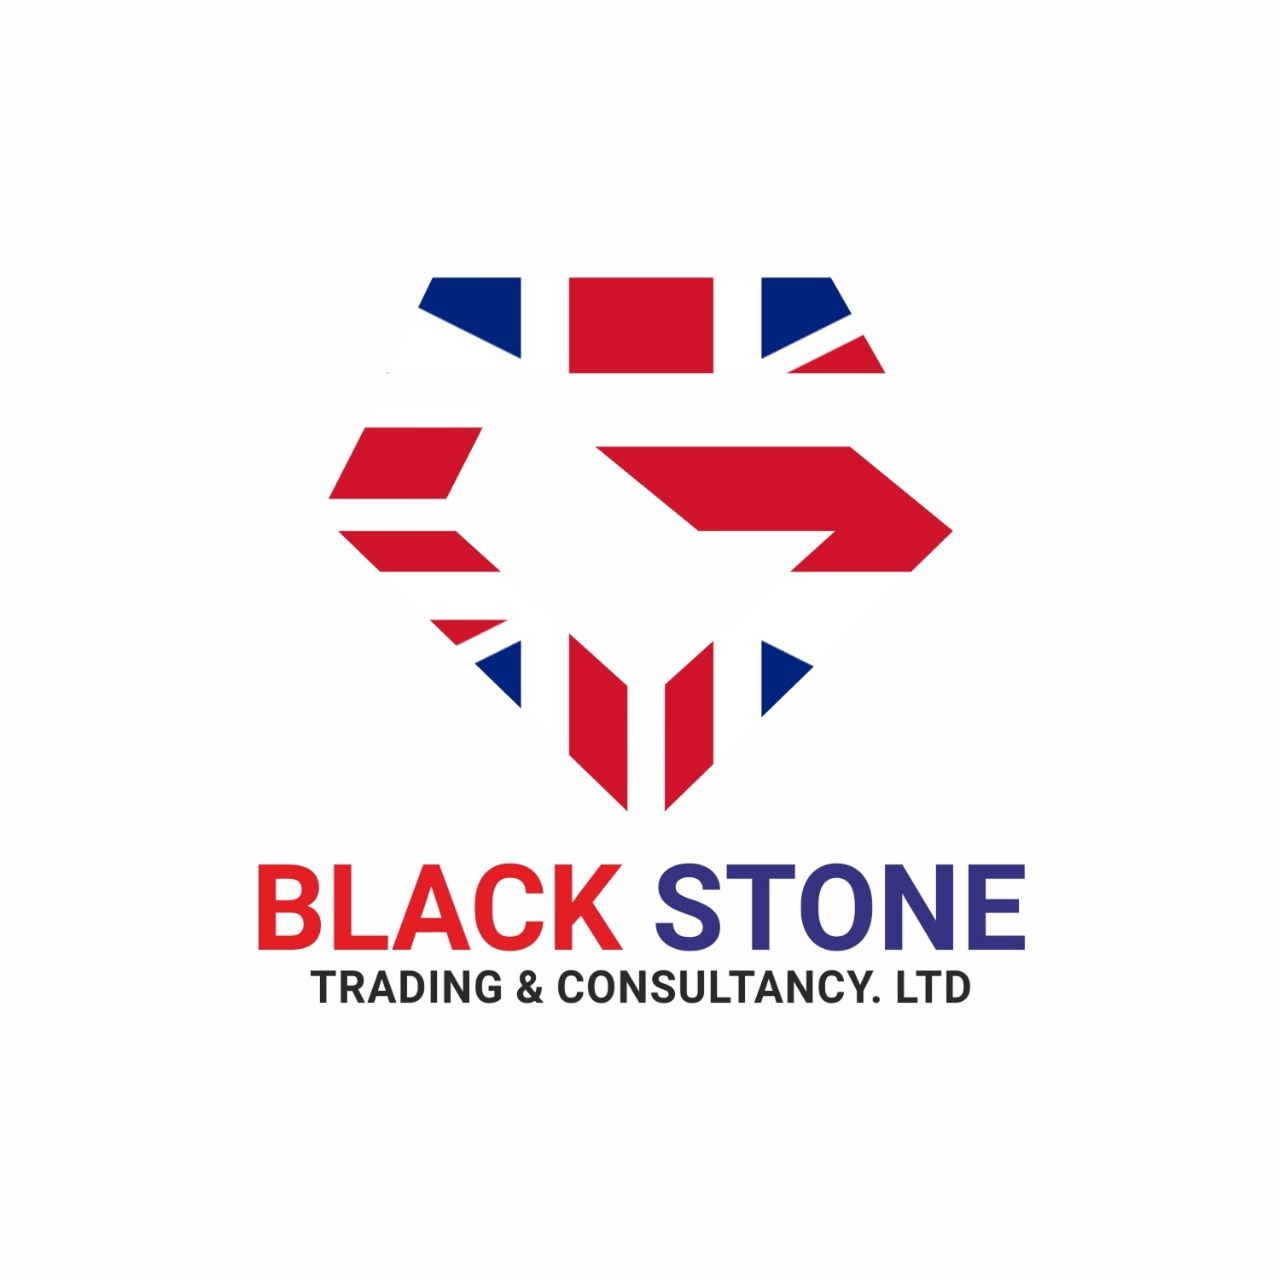 BLACK STONE TRADING &CONSULTANCY LTD.